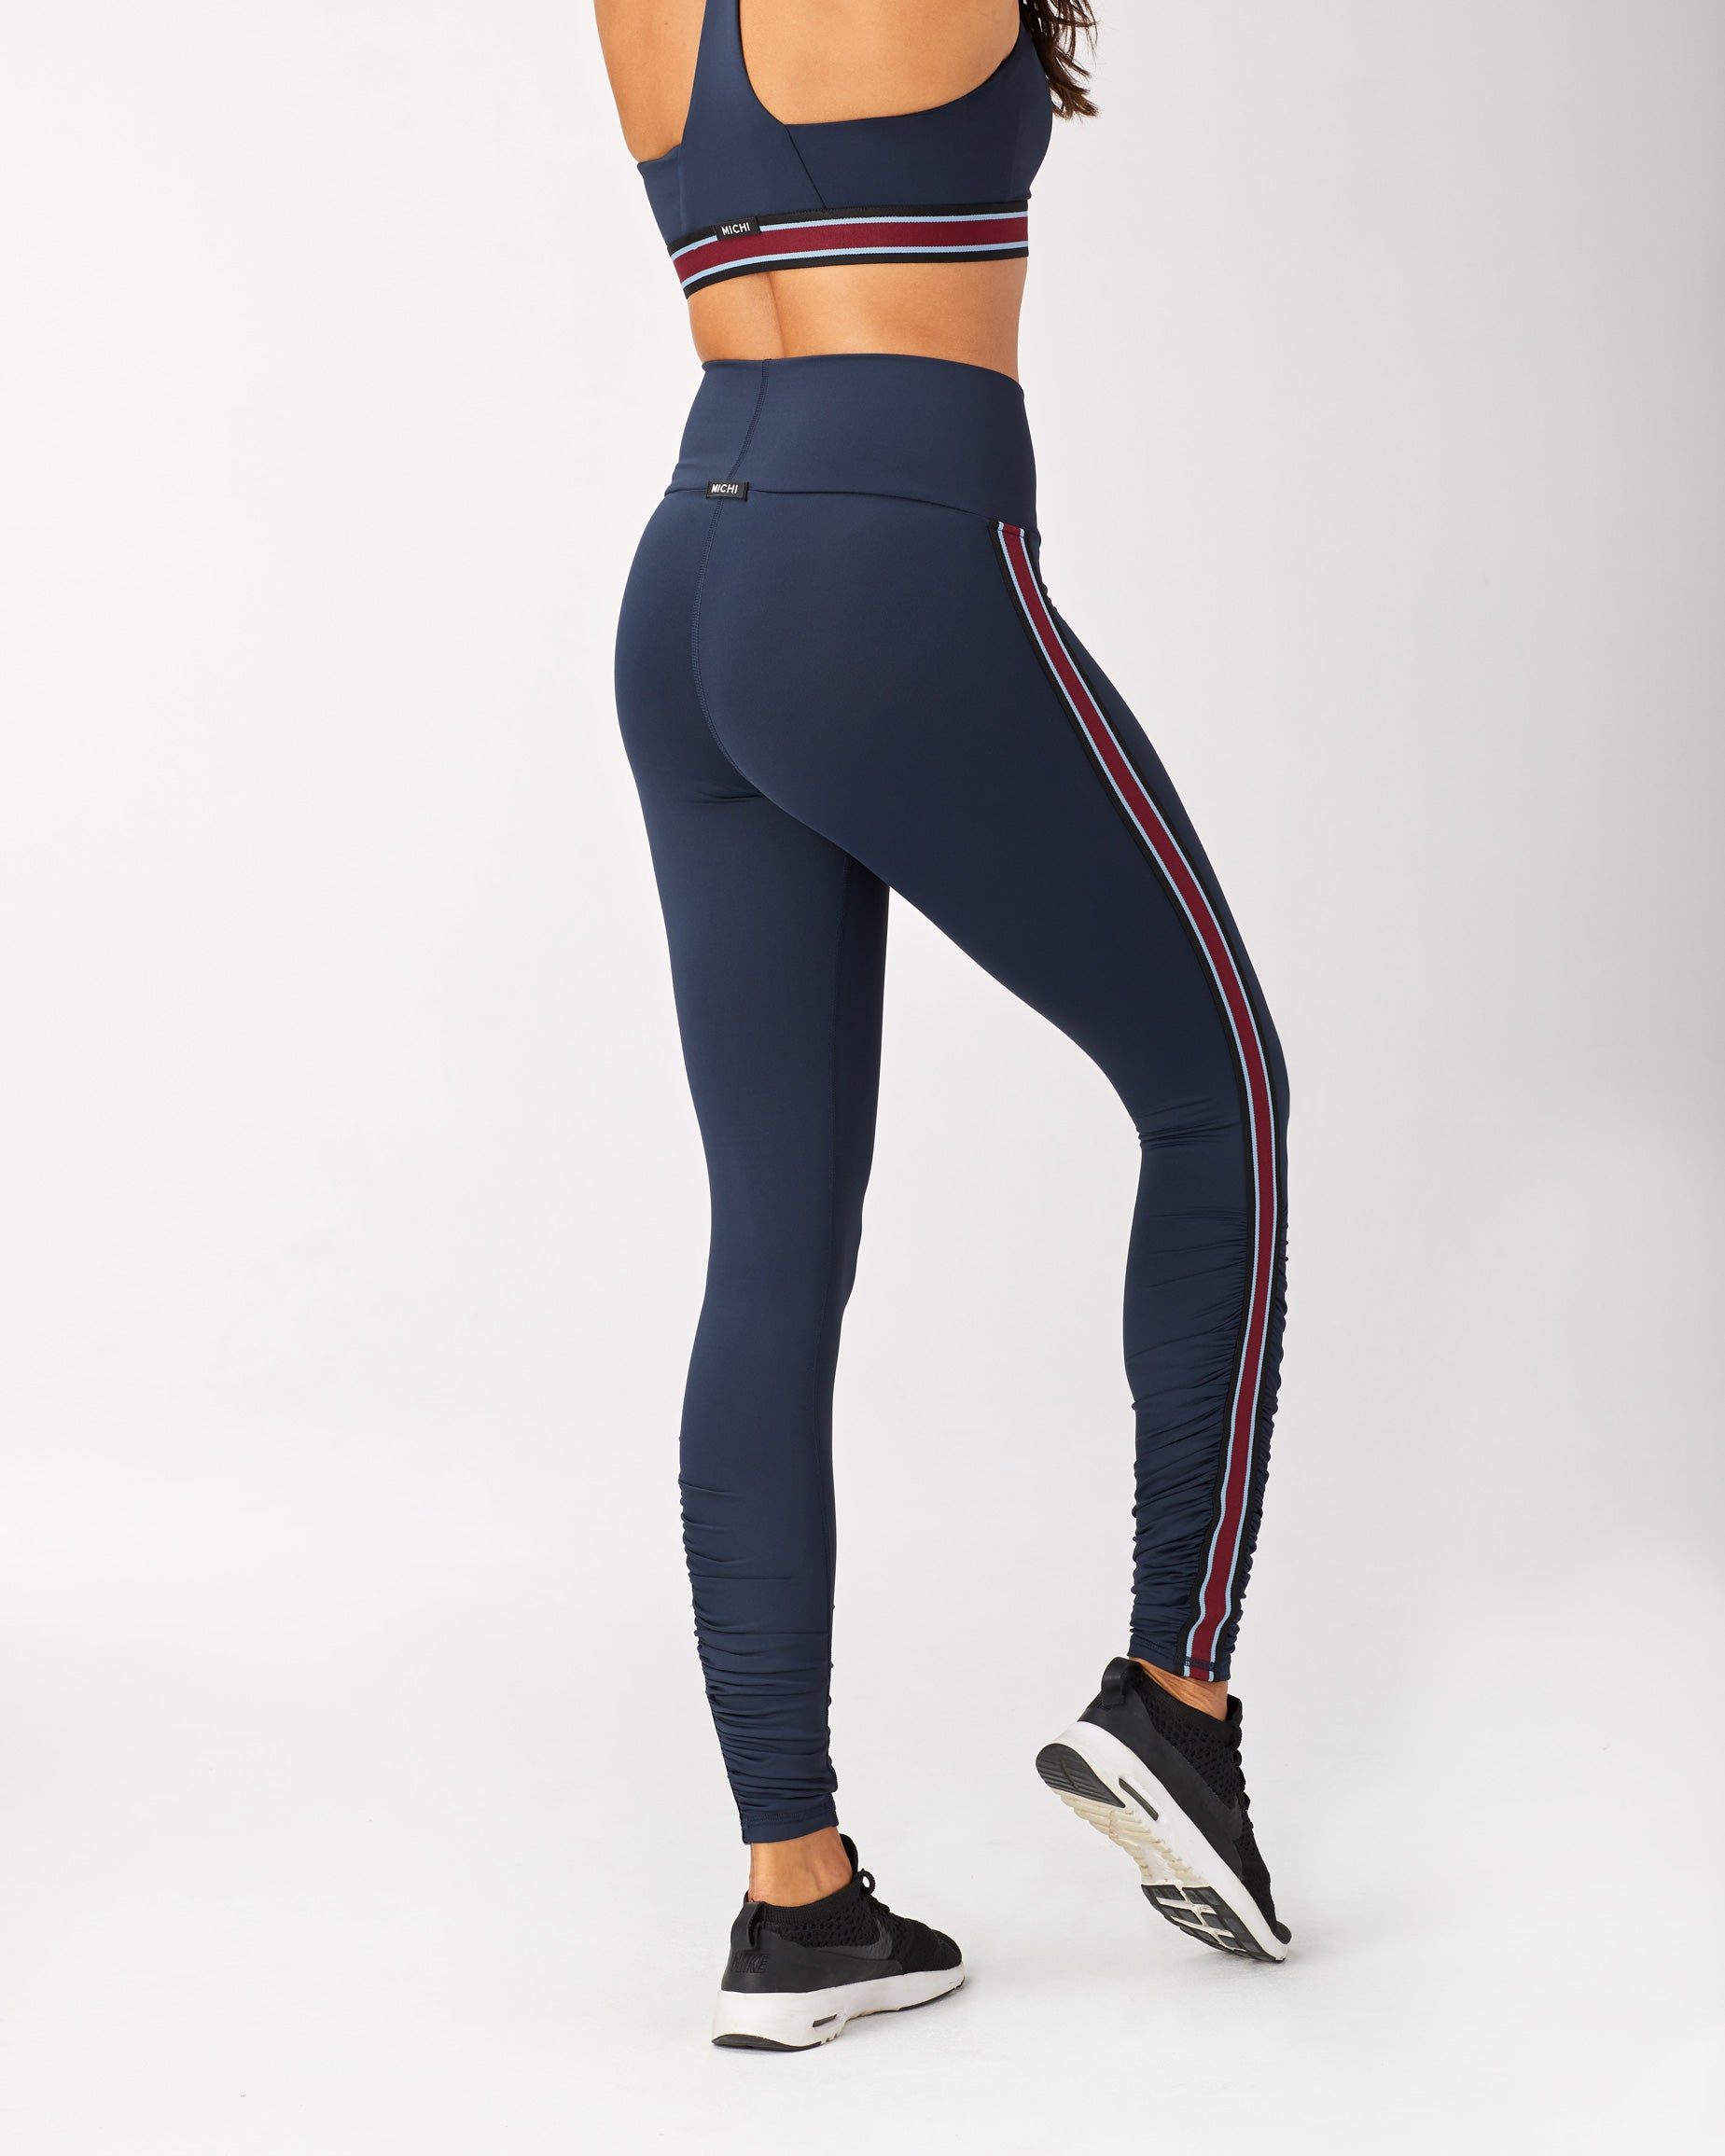 Speed High Waisted Legging - Deep Sea Navy